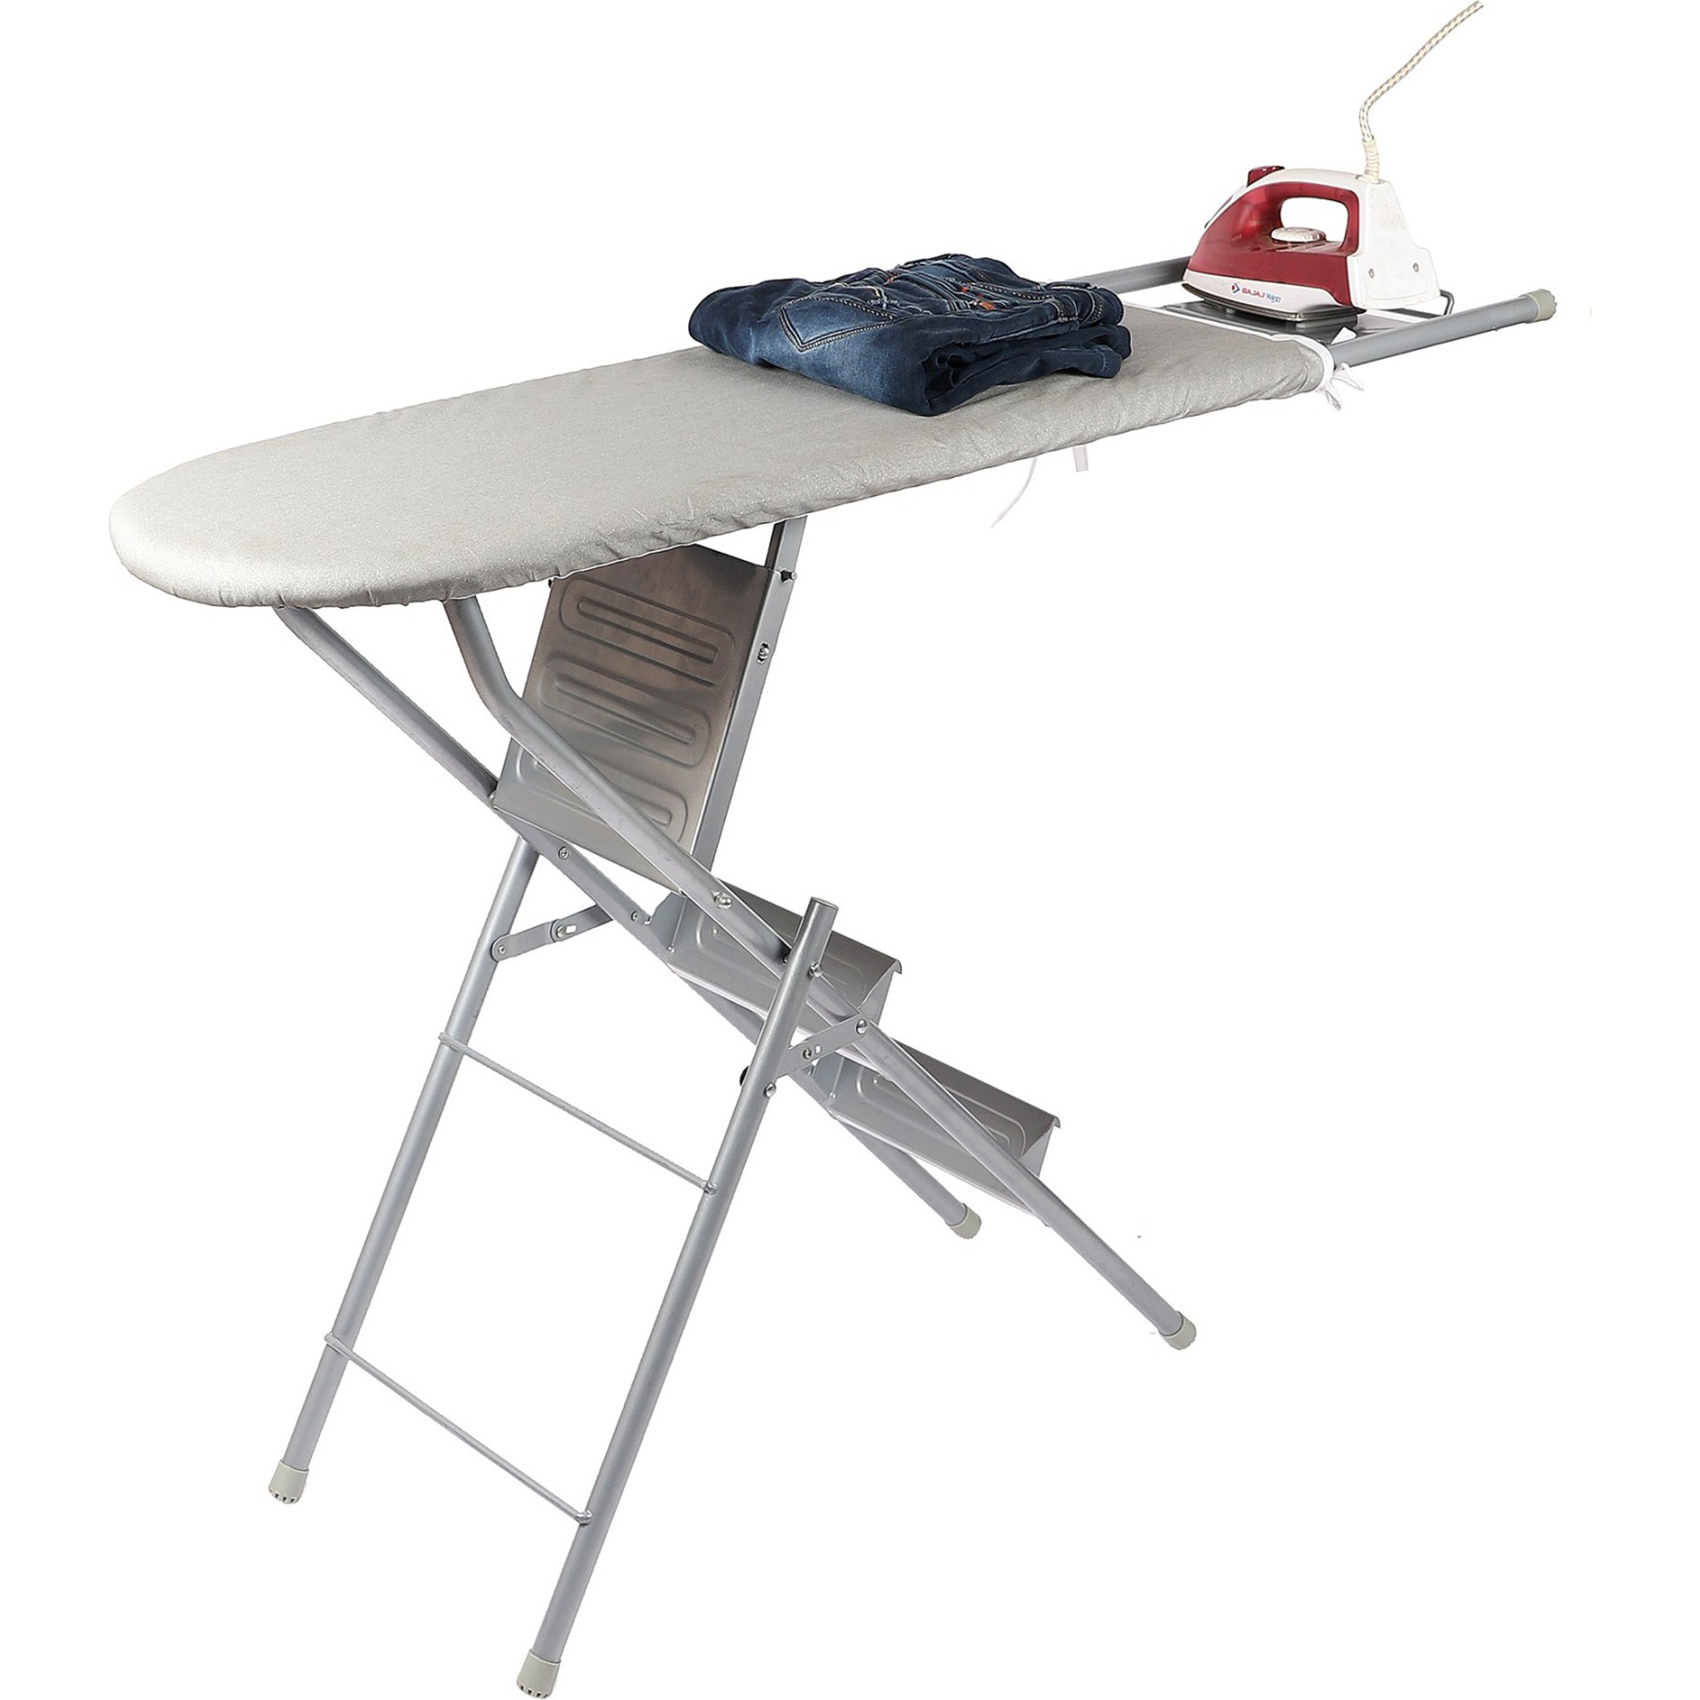 Peng Essentials Ironing Board (Converts to a Ladder, PNG000031, Black)_1